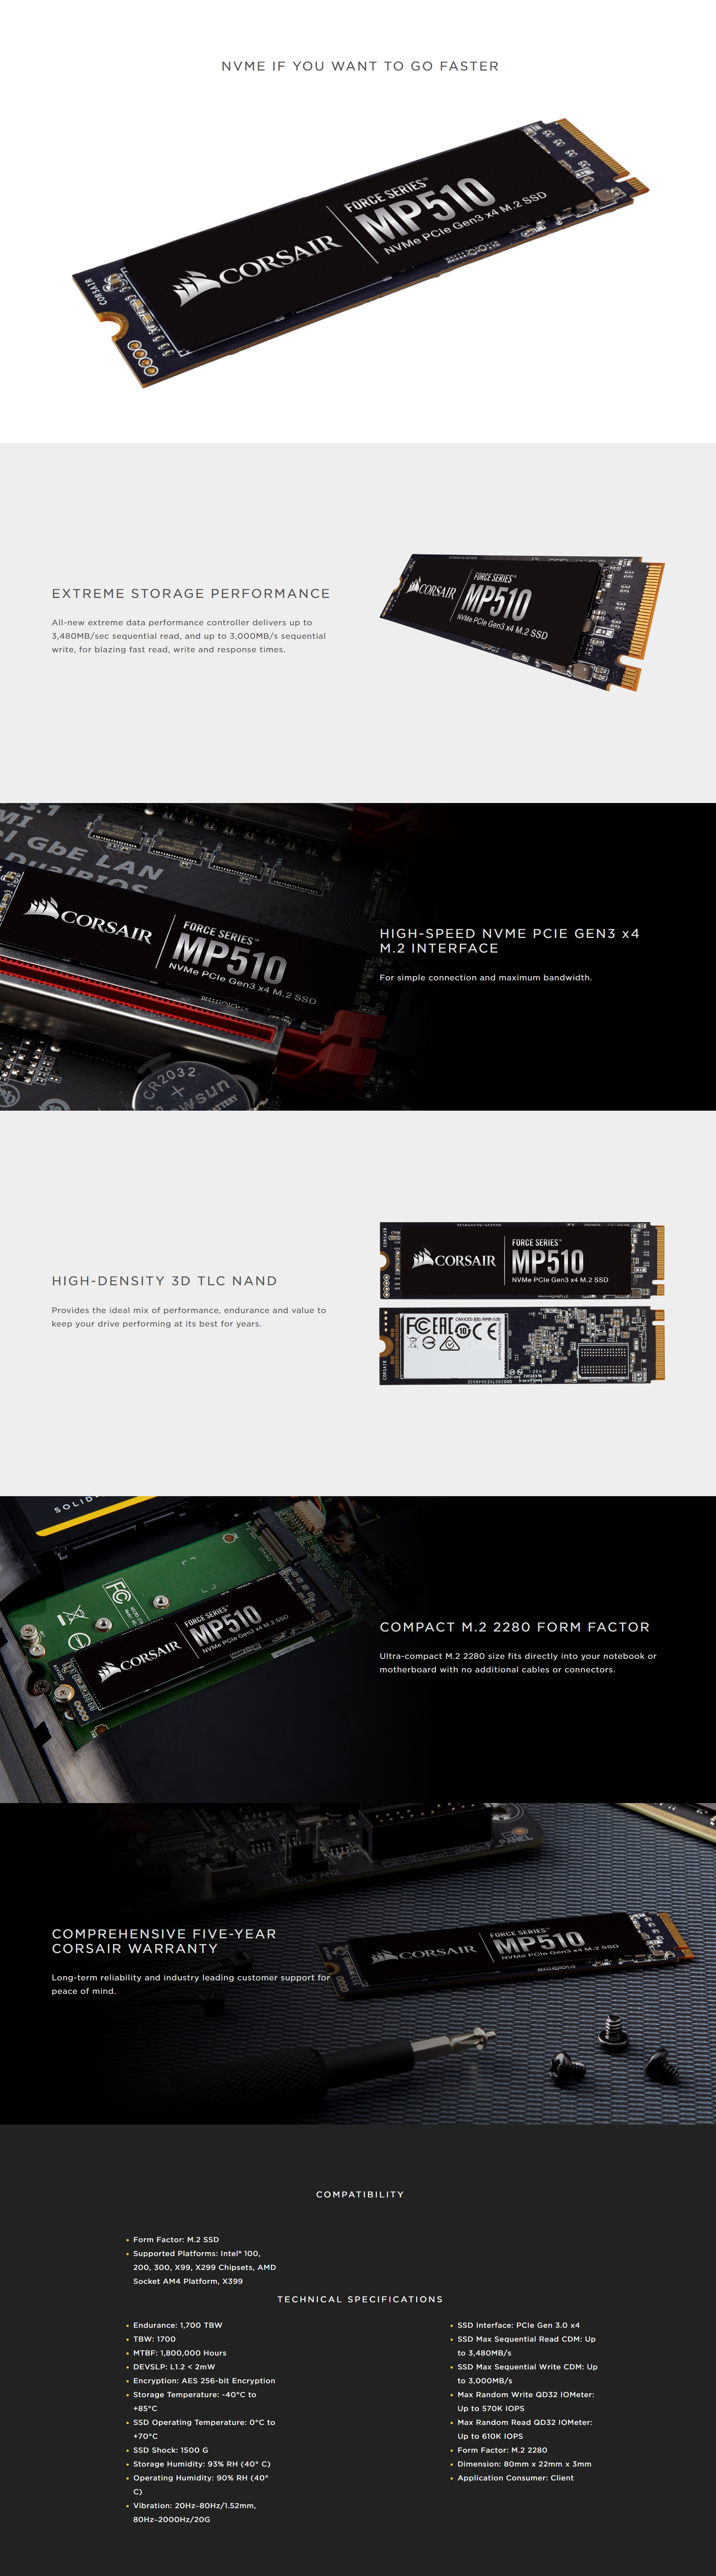 A large marketing image providing additional information about the product Corsair Force MP510 960GB M.2 NVMe - Additional alt info not provided